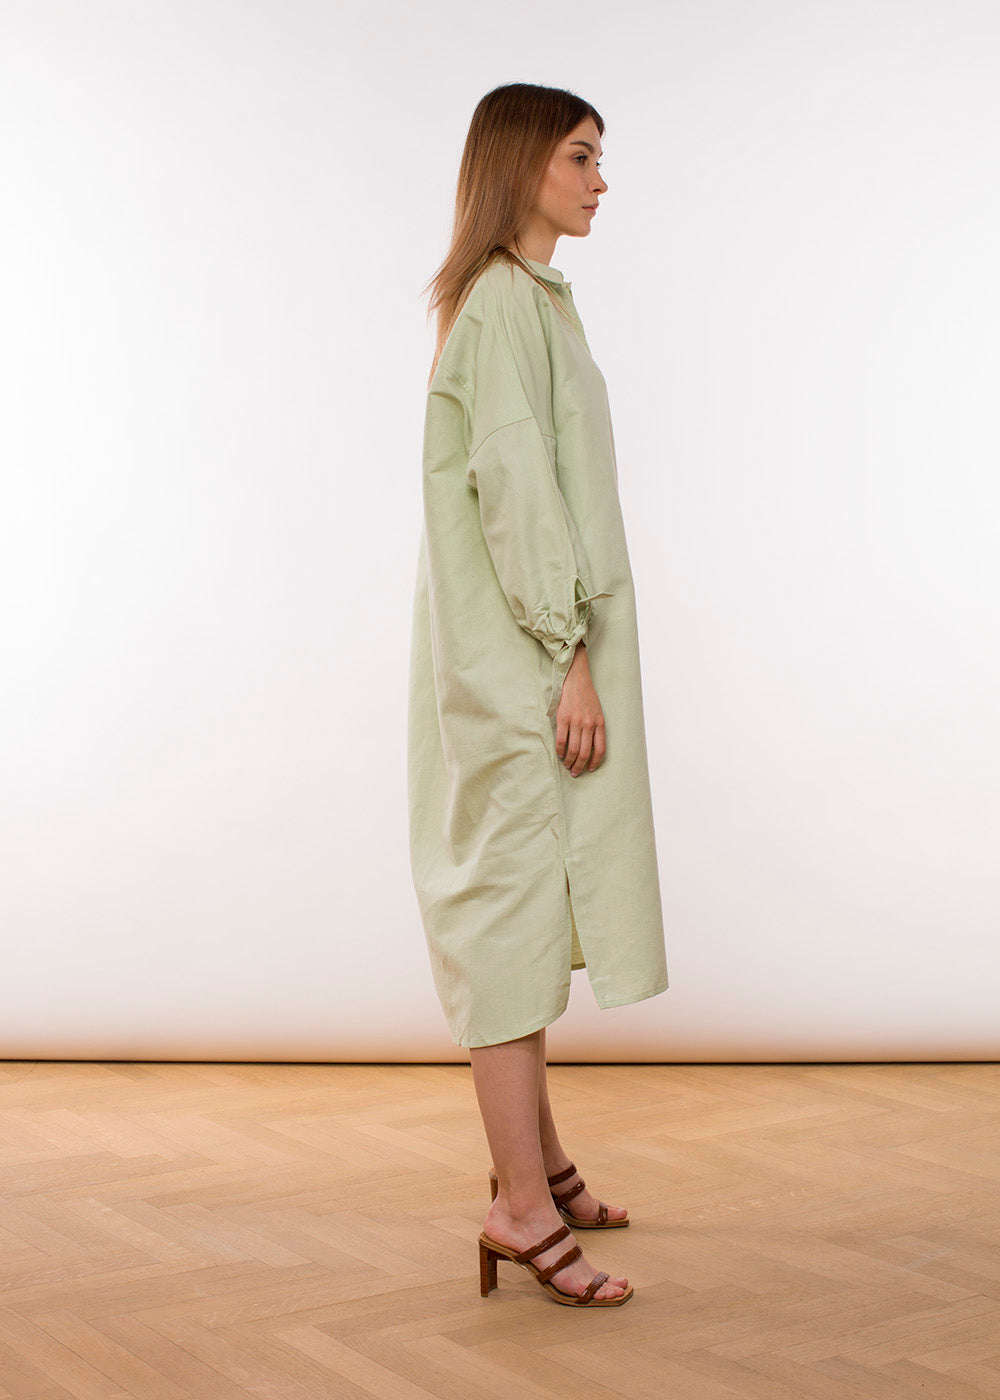 Claudia Nabholz - Mira Blouse Dress - Light Green